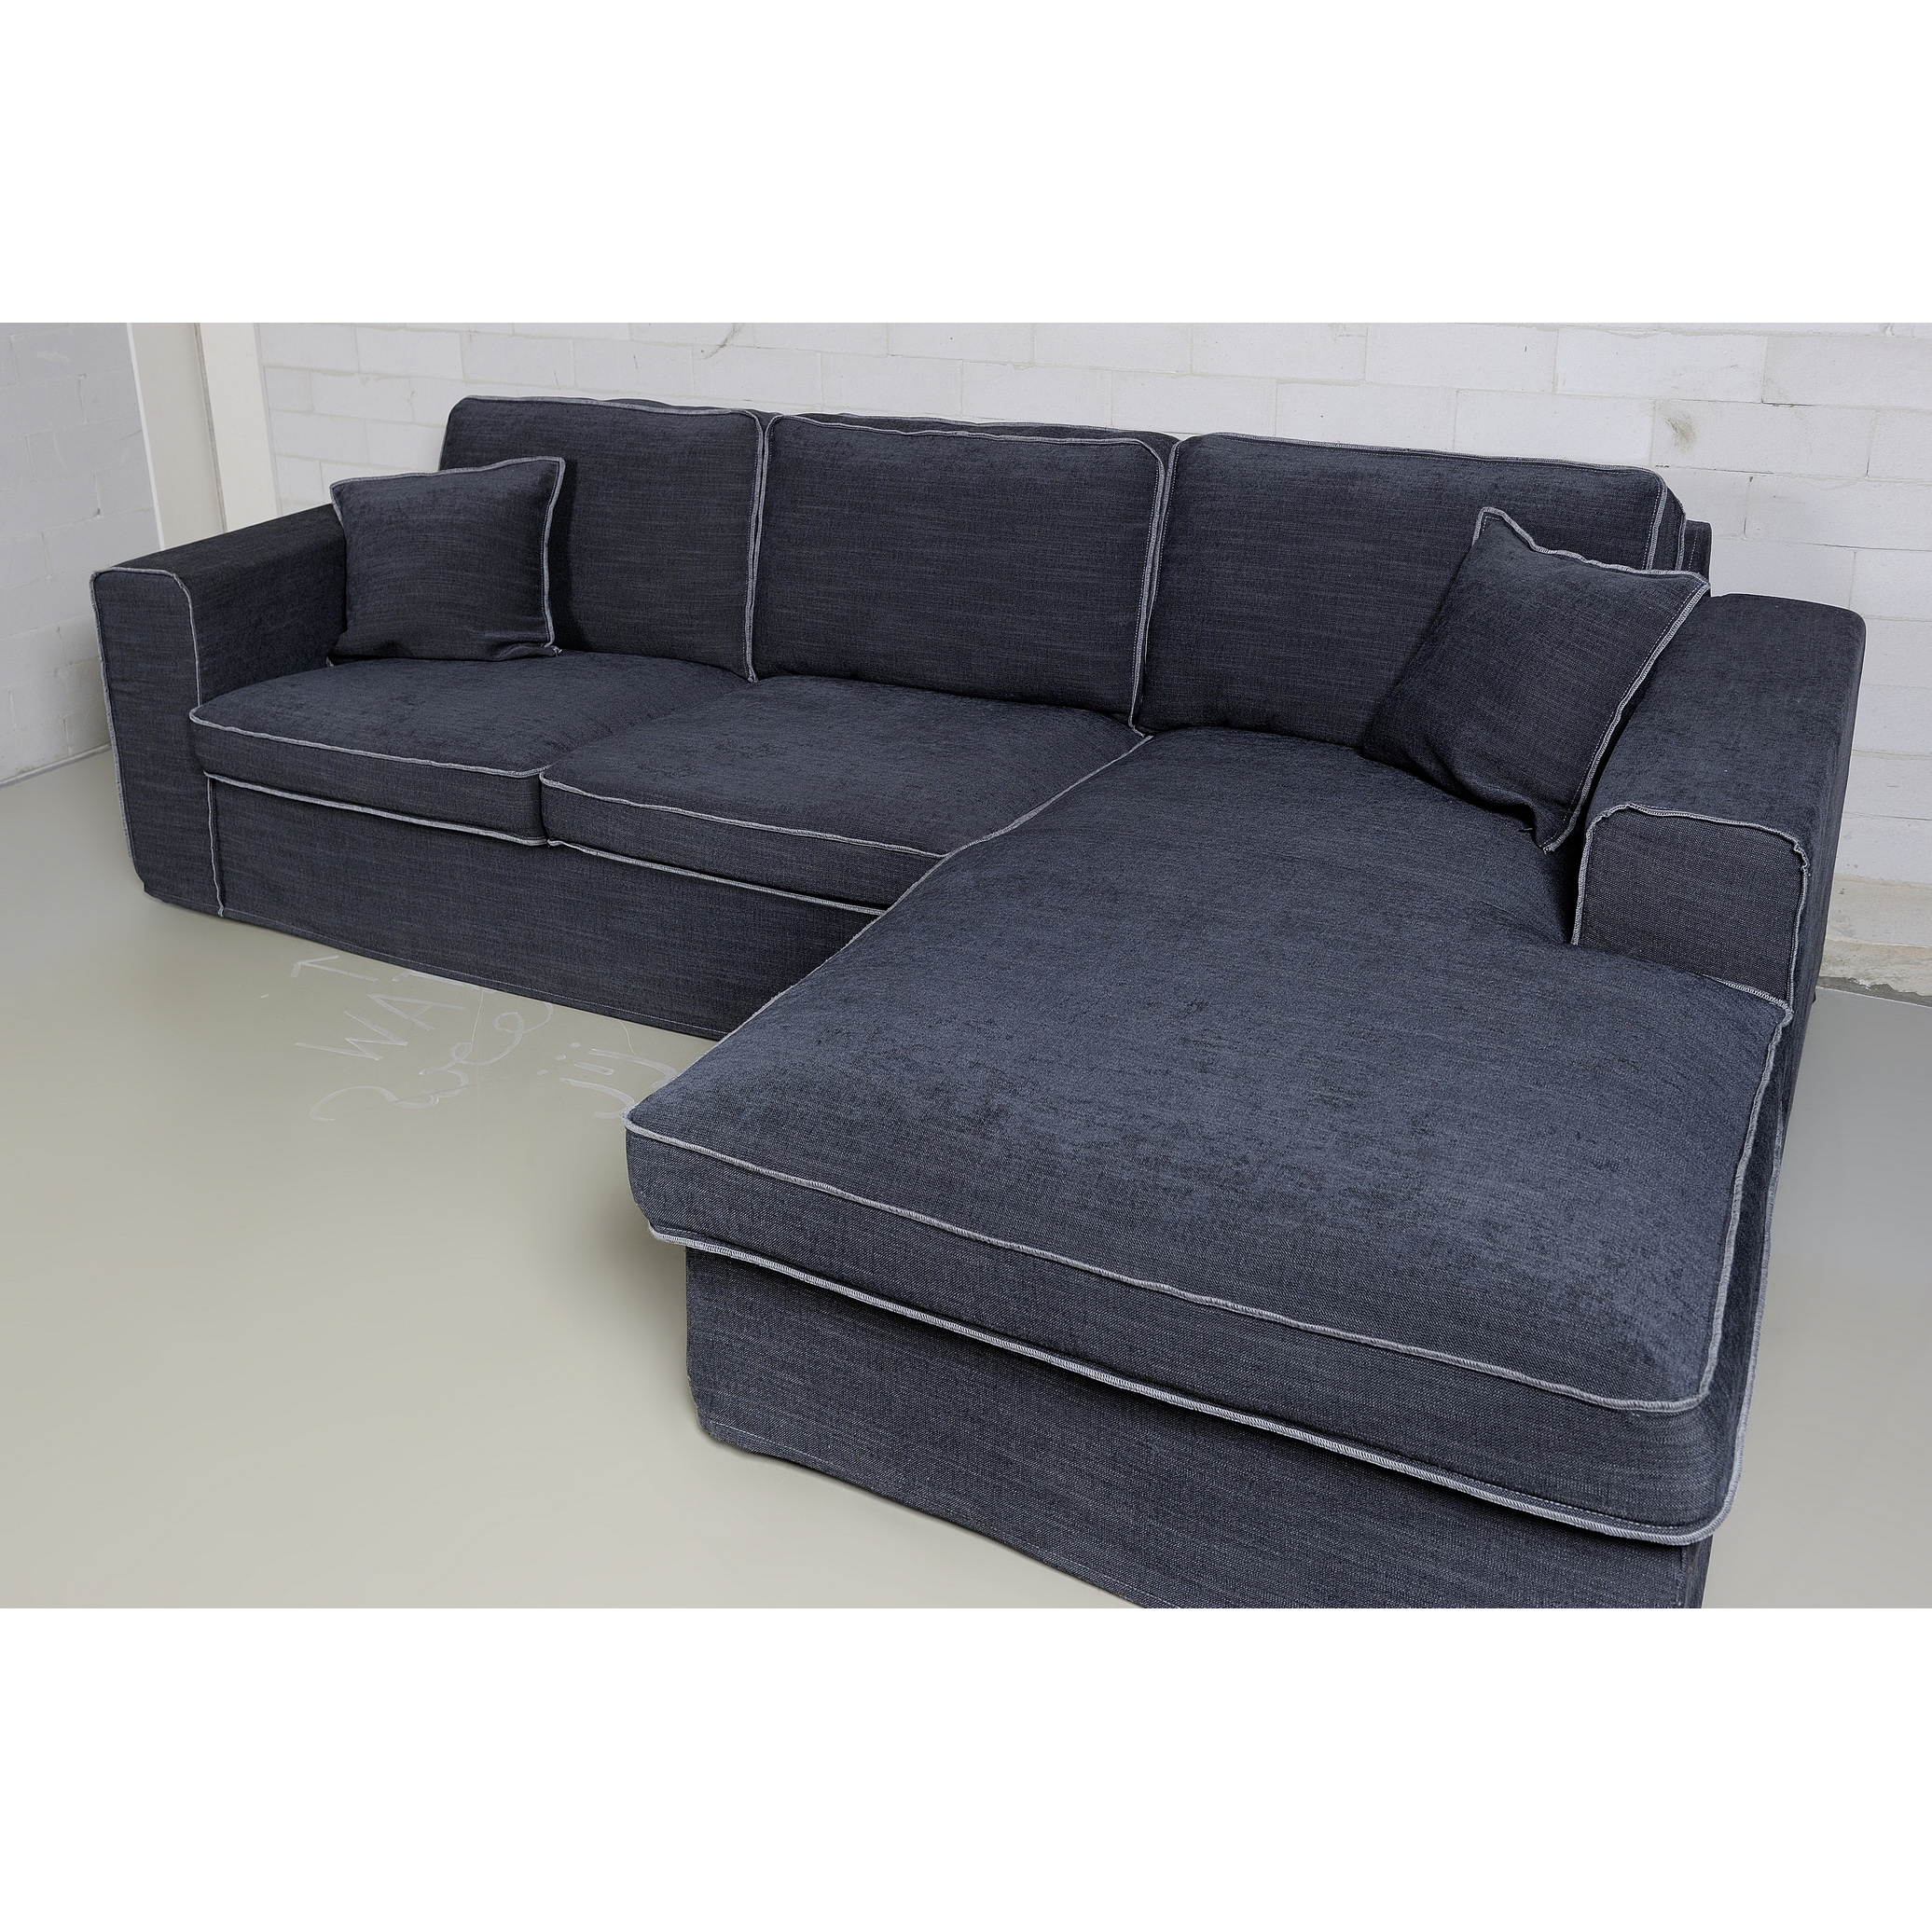 Bank Met Chaise Longue Links Hoekbank Chaise Longue Fabulous Hoekbank Lambada Chaise